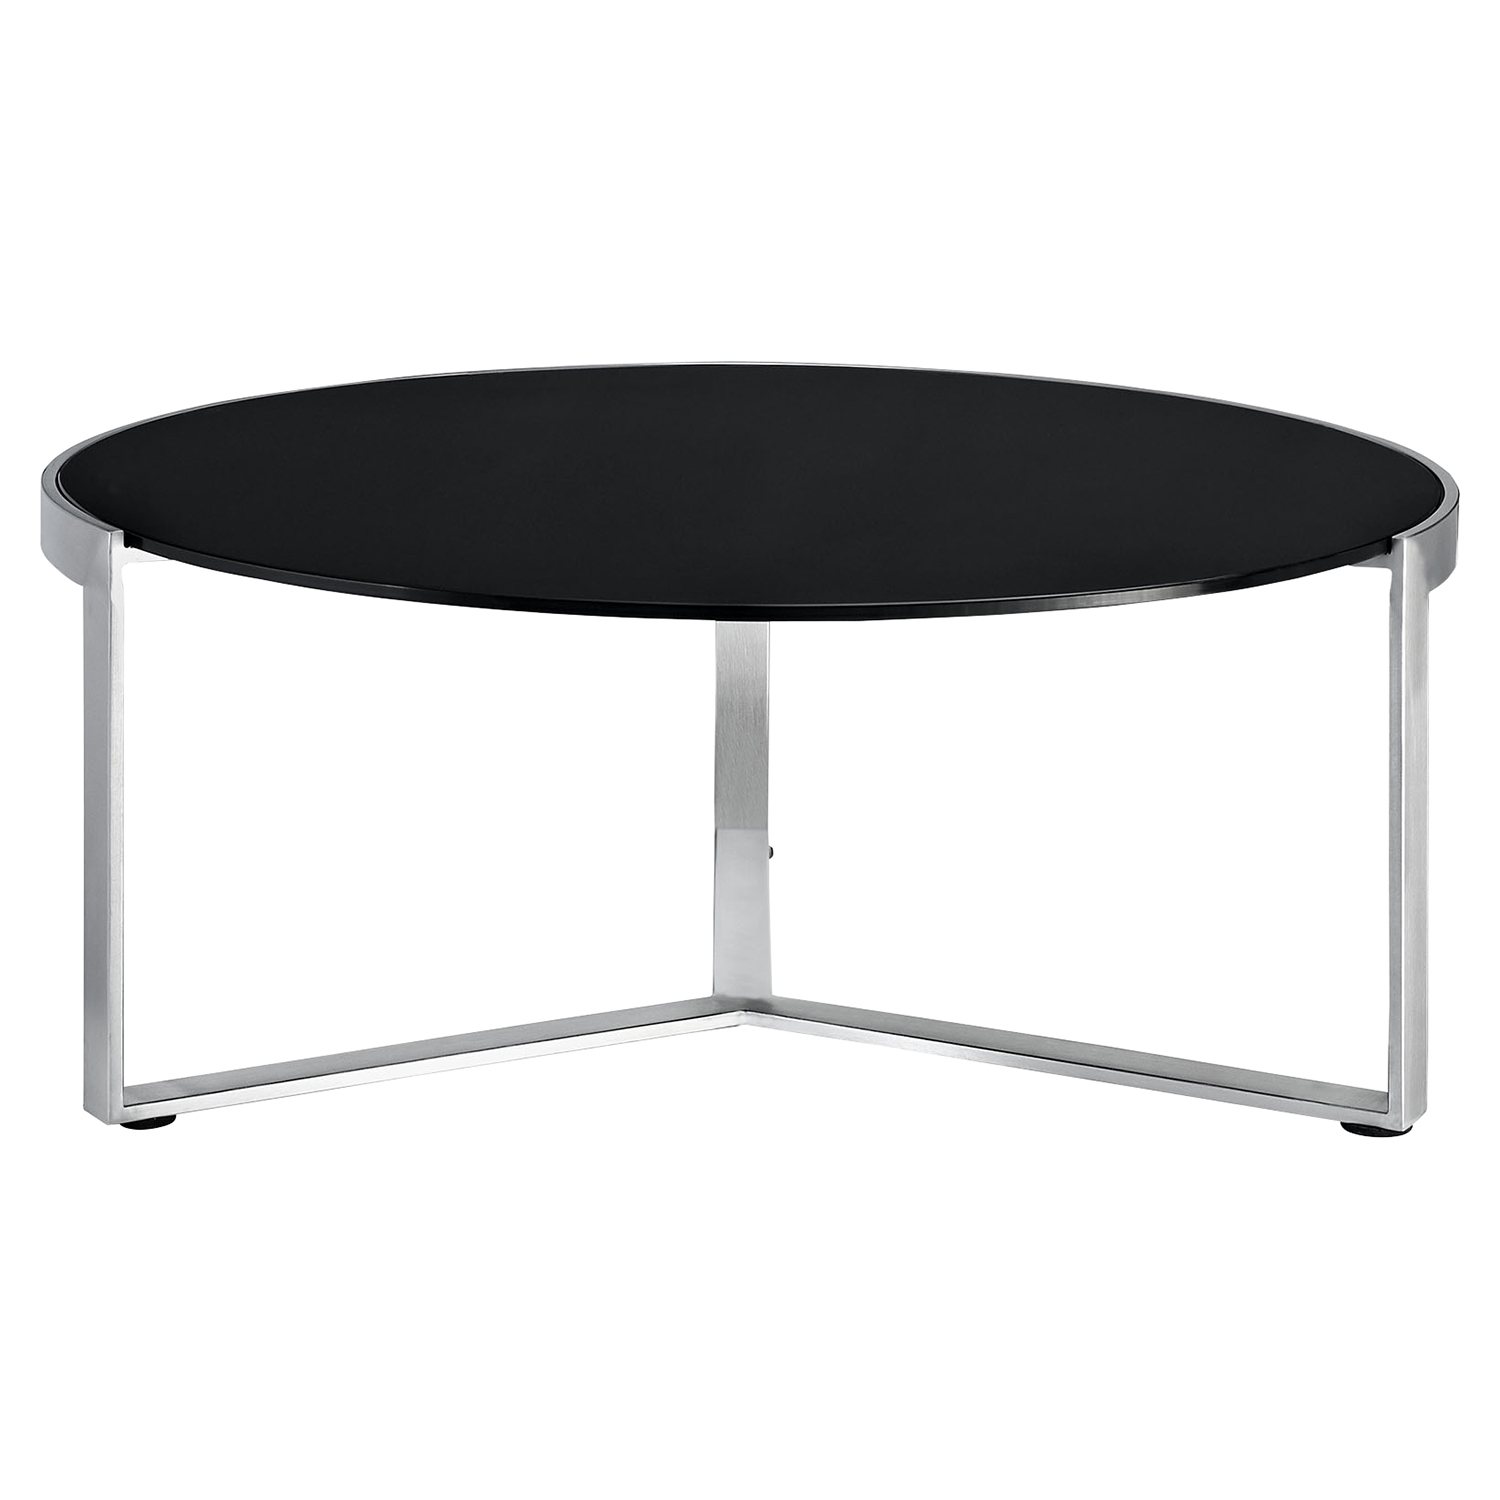 Disk Coffee Table - Black - EEI-256-BLK